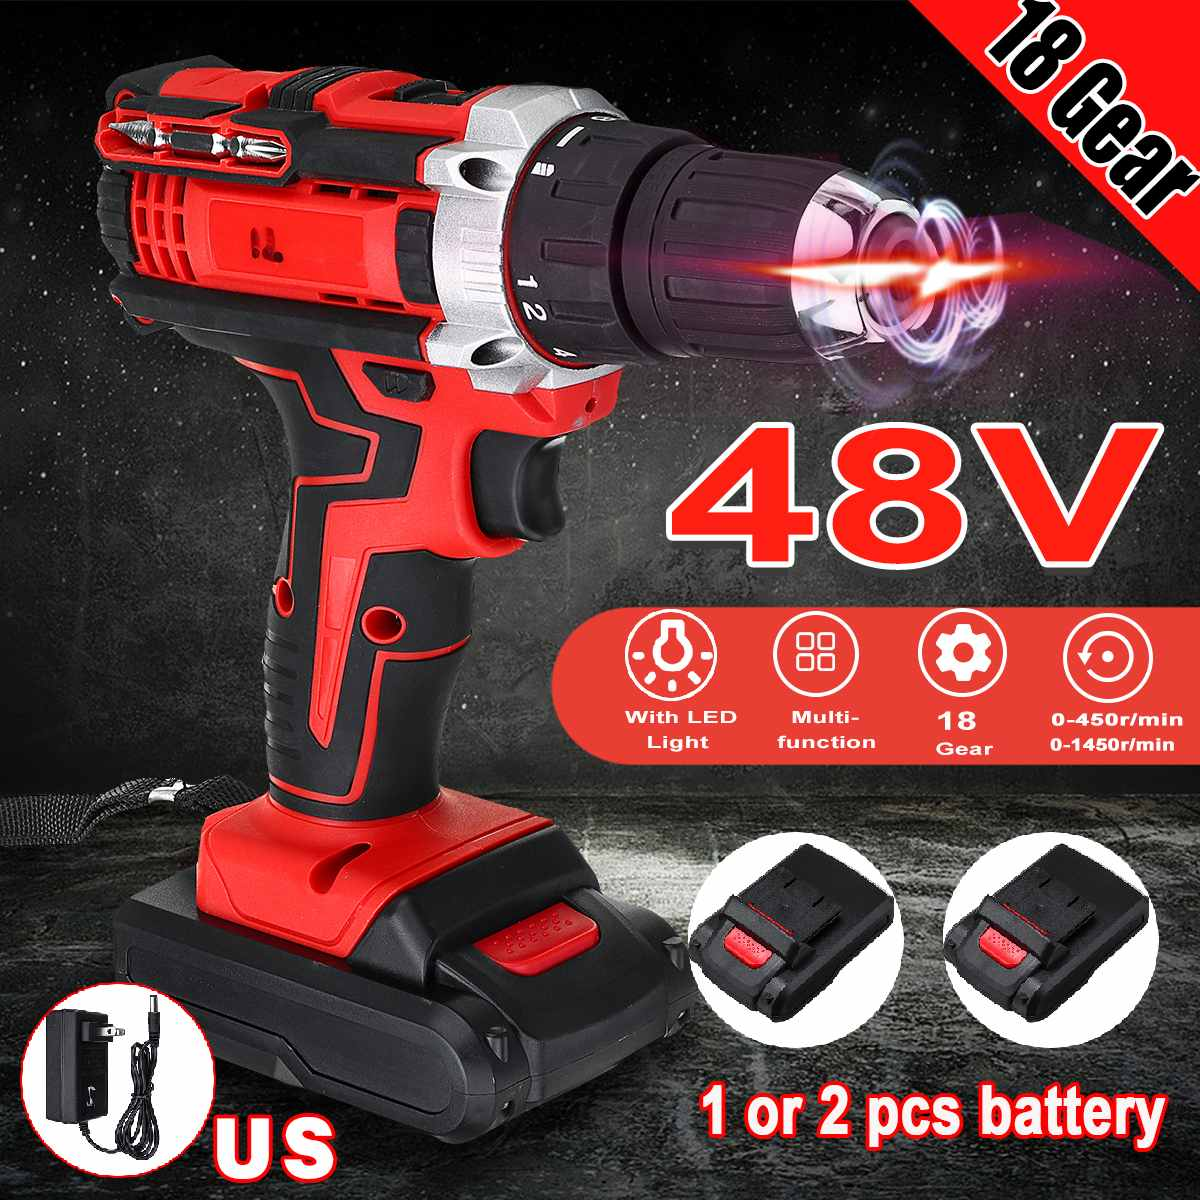 3 In 1 Electric Drill Cordless Screwdriver 48v 2 Speed Driver Rechargeable 13000mah With 2 Li-ion Battery 110v 220V